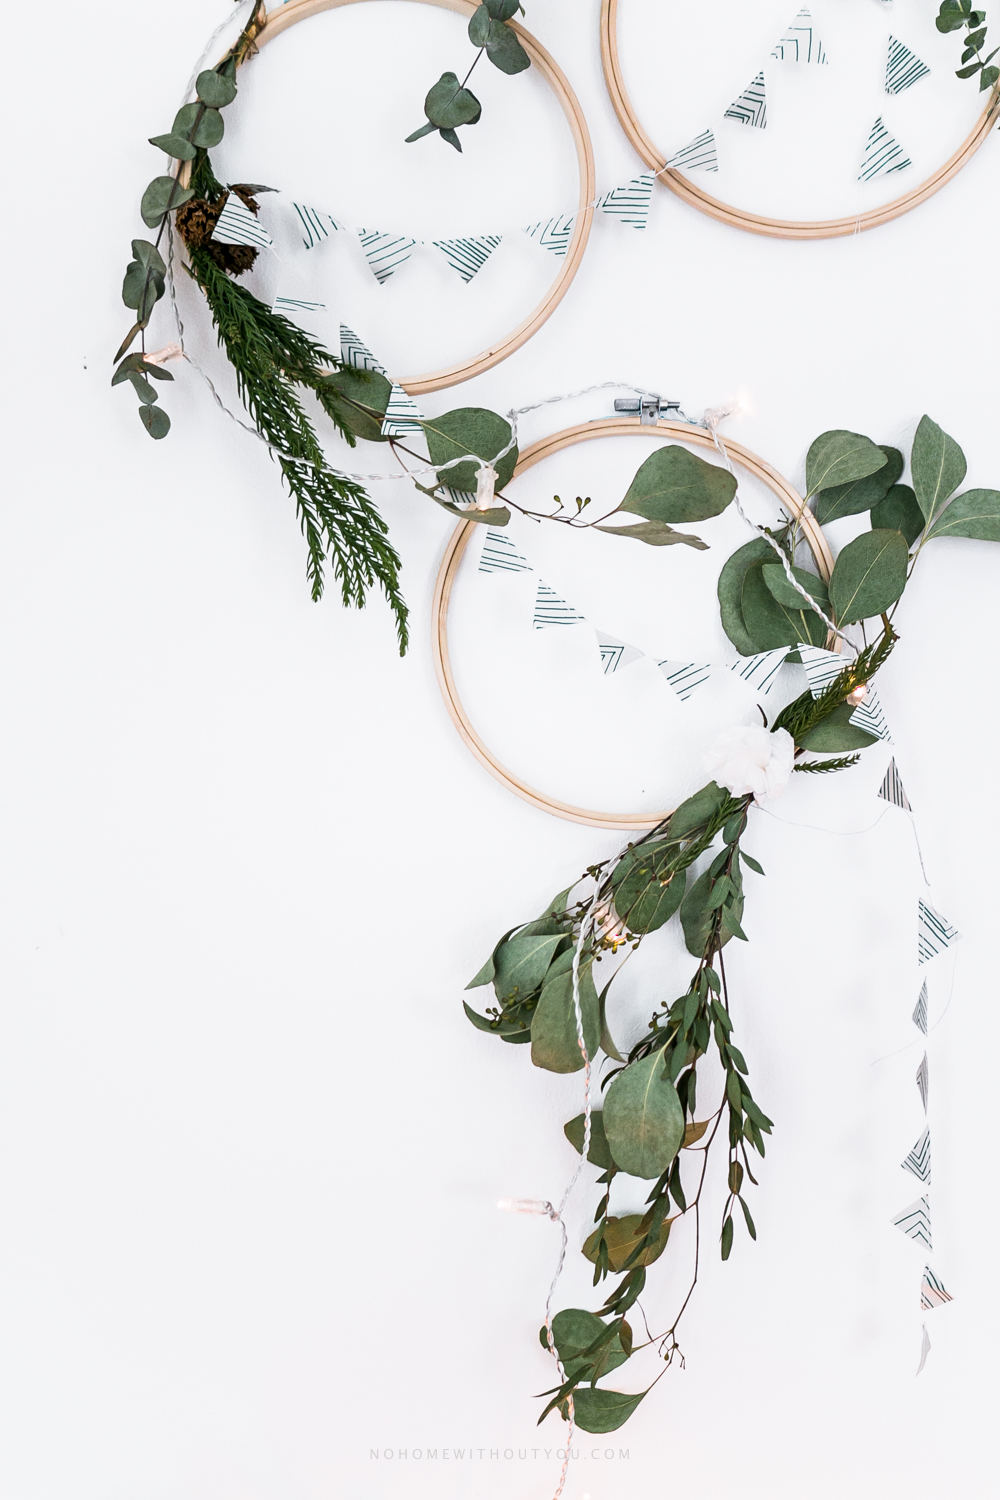 DIY plant wreath eucalyptus coniferous No Home Without You (4 of 12)